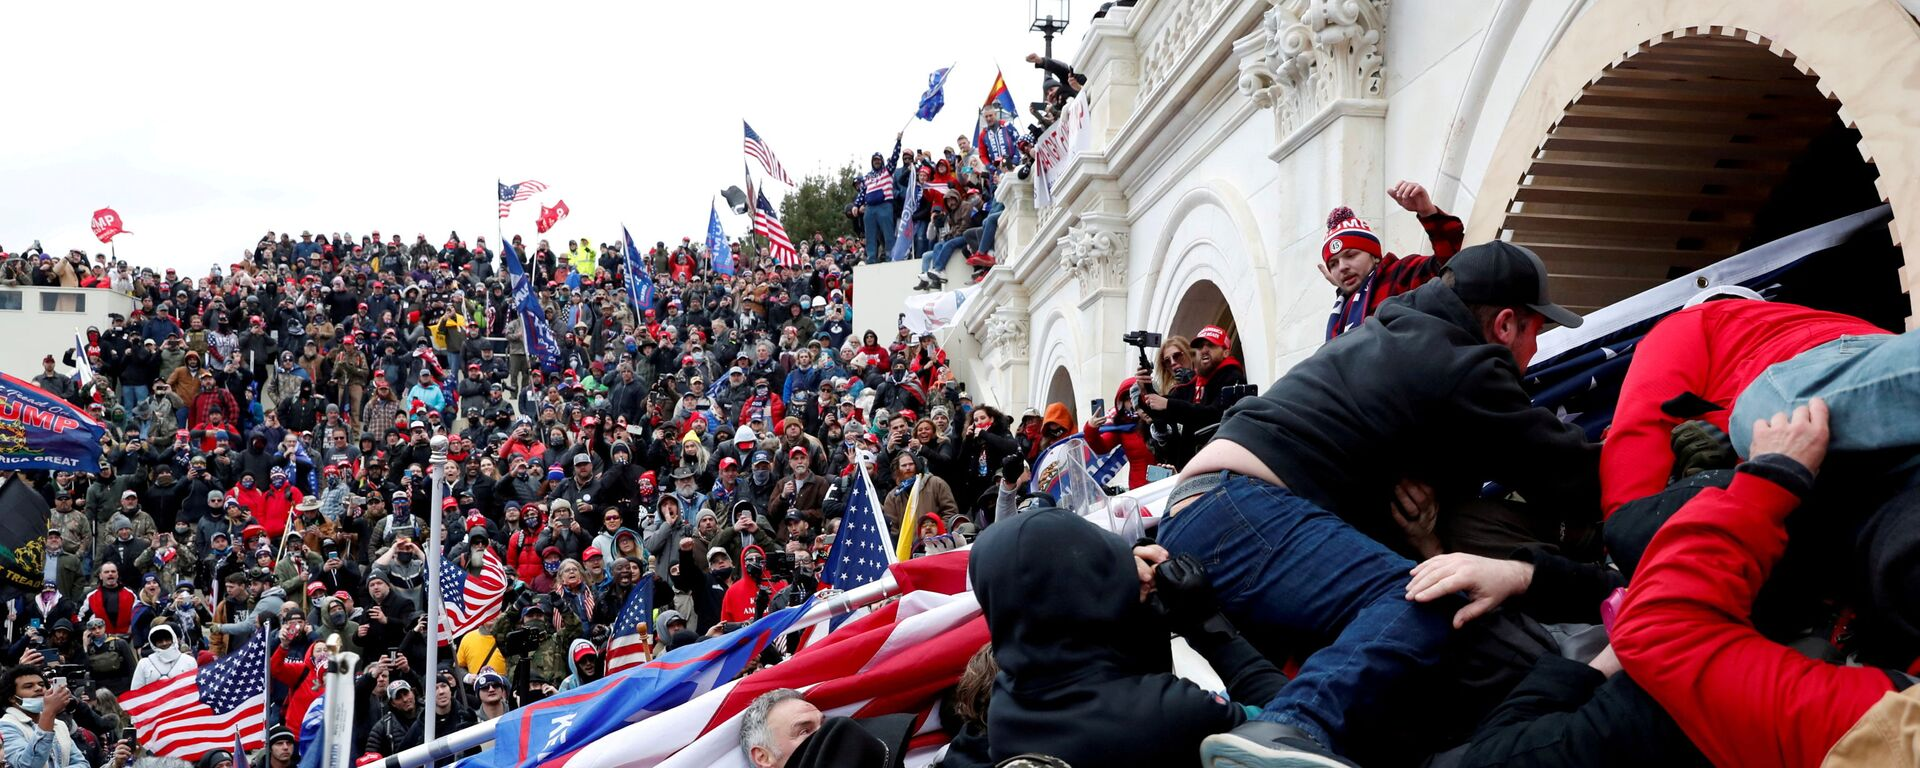 Pro-Trump protesters storm into the U.S. Capitol during clashes with police, during a rally to contest the certification of the 2020 U.S. presidential election results by the U.S. Congress, in Washington, U.S, January 6, 2021 - Sputnik International, 1920, 18.09.2021